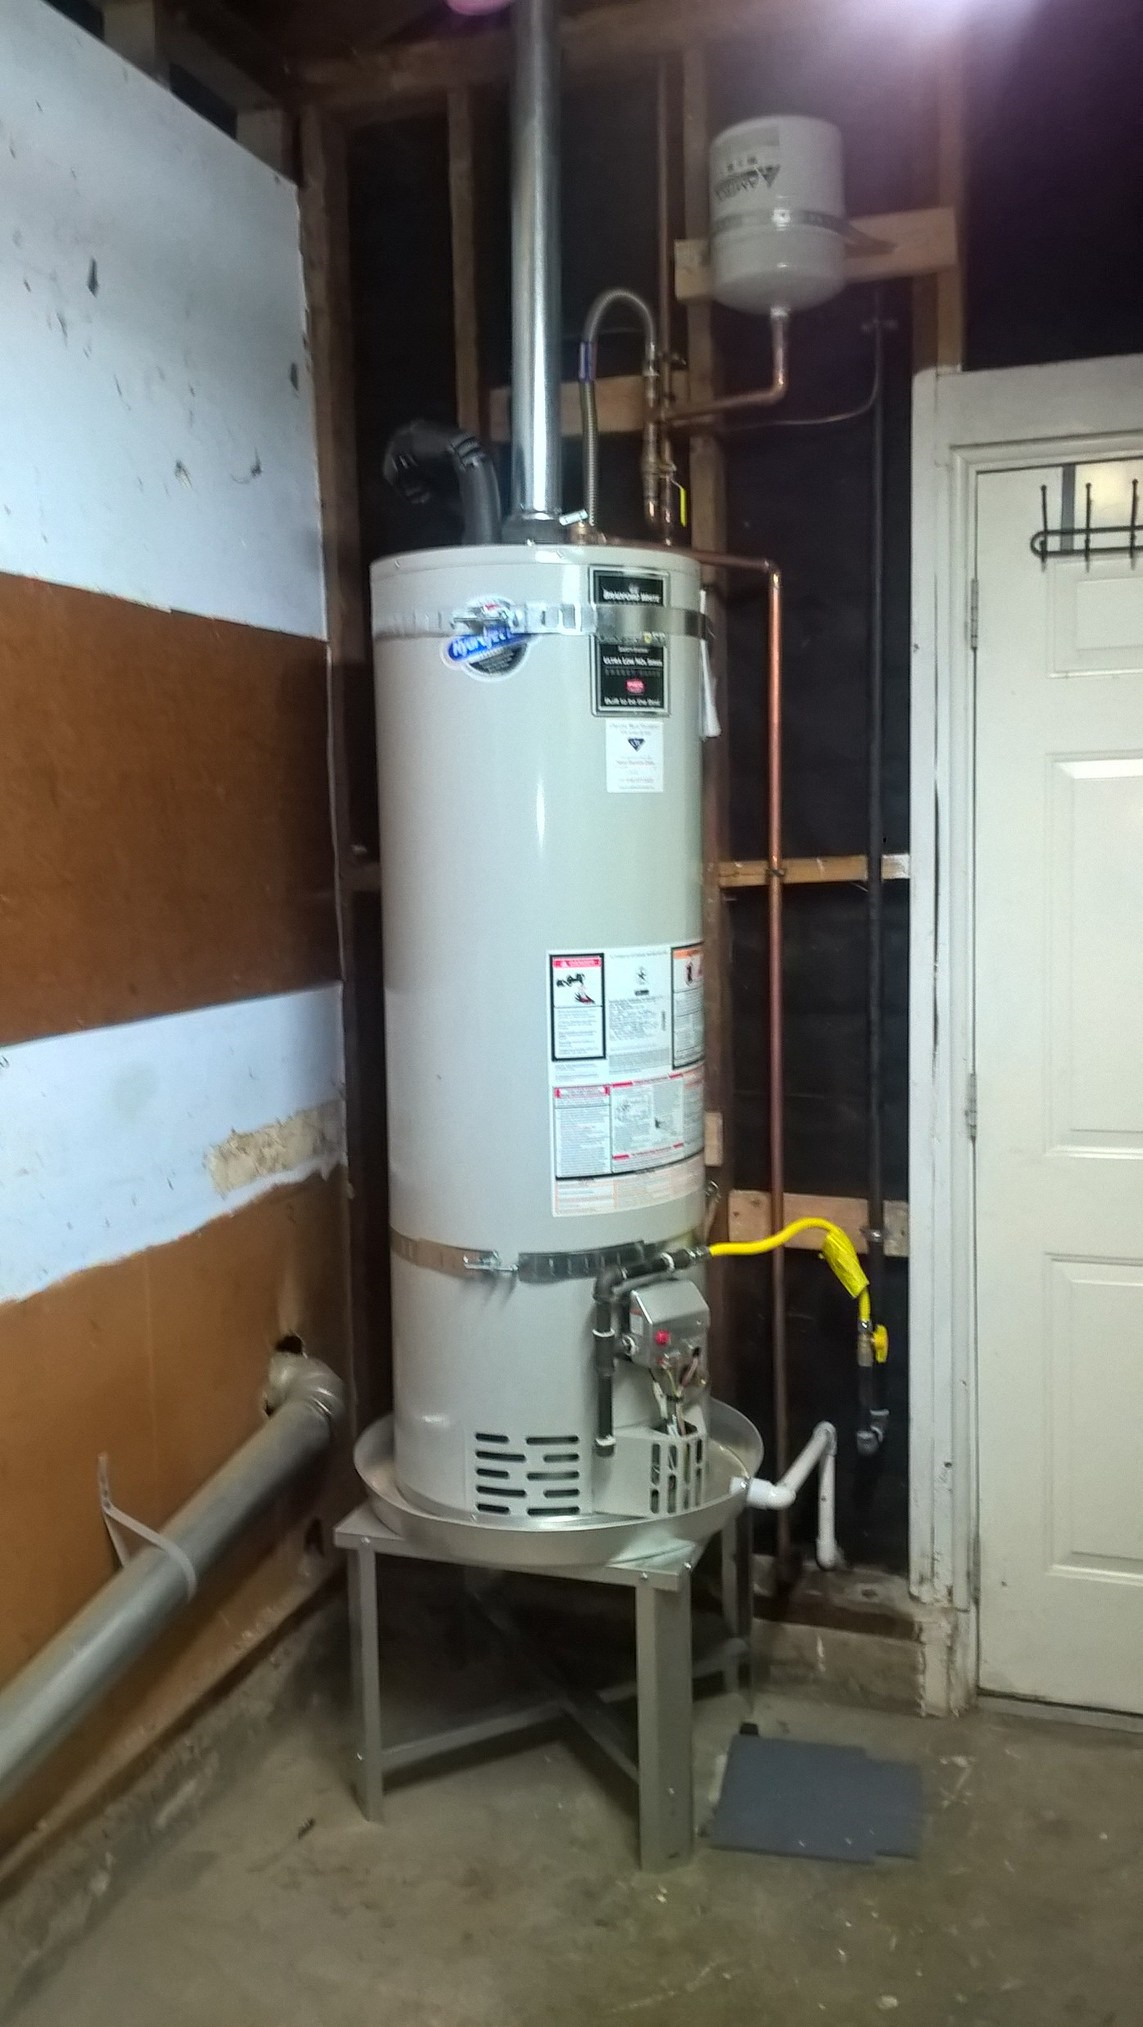 New Water Heater update dtd 20160120 pic 3.png